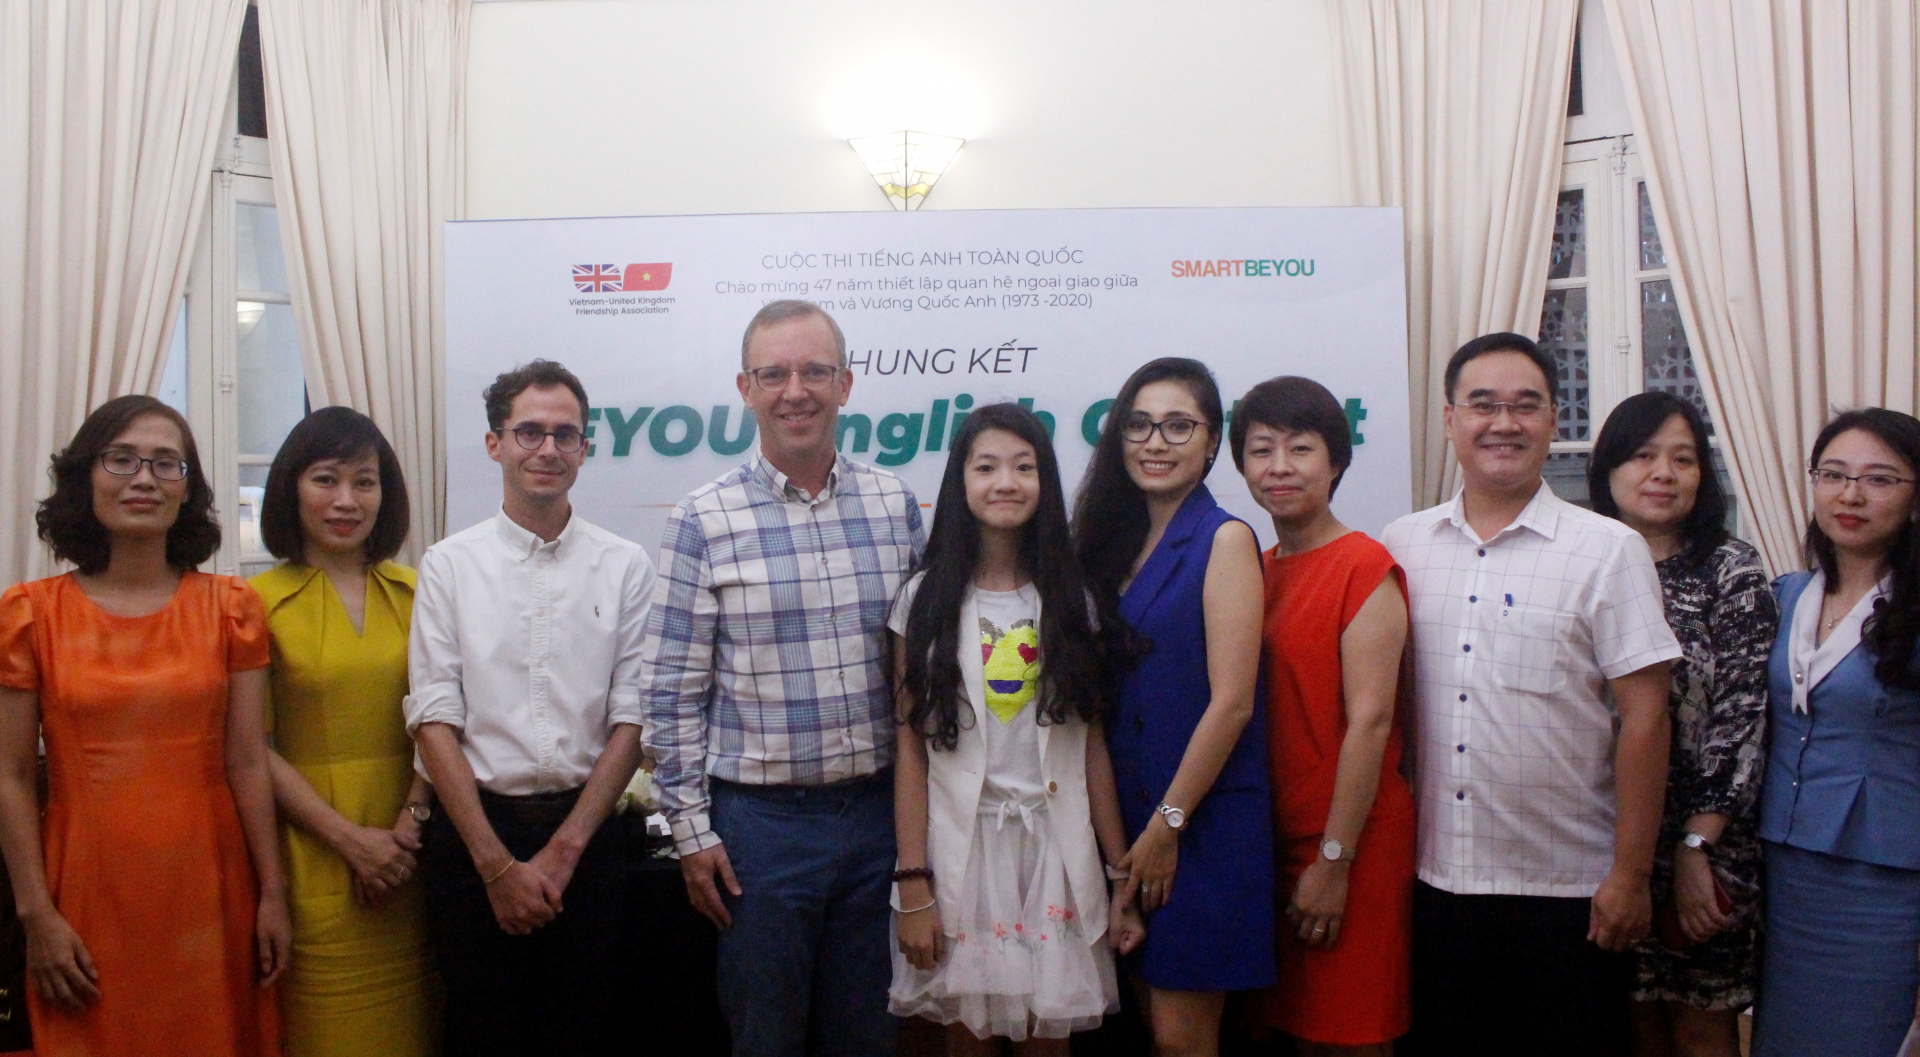 the national beyou english contest first prize won by dao lien ha from brendon primary school